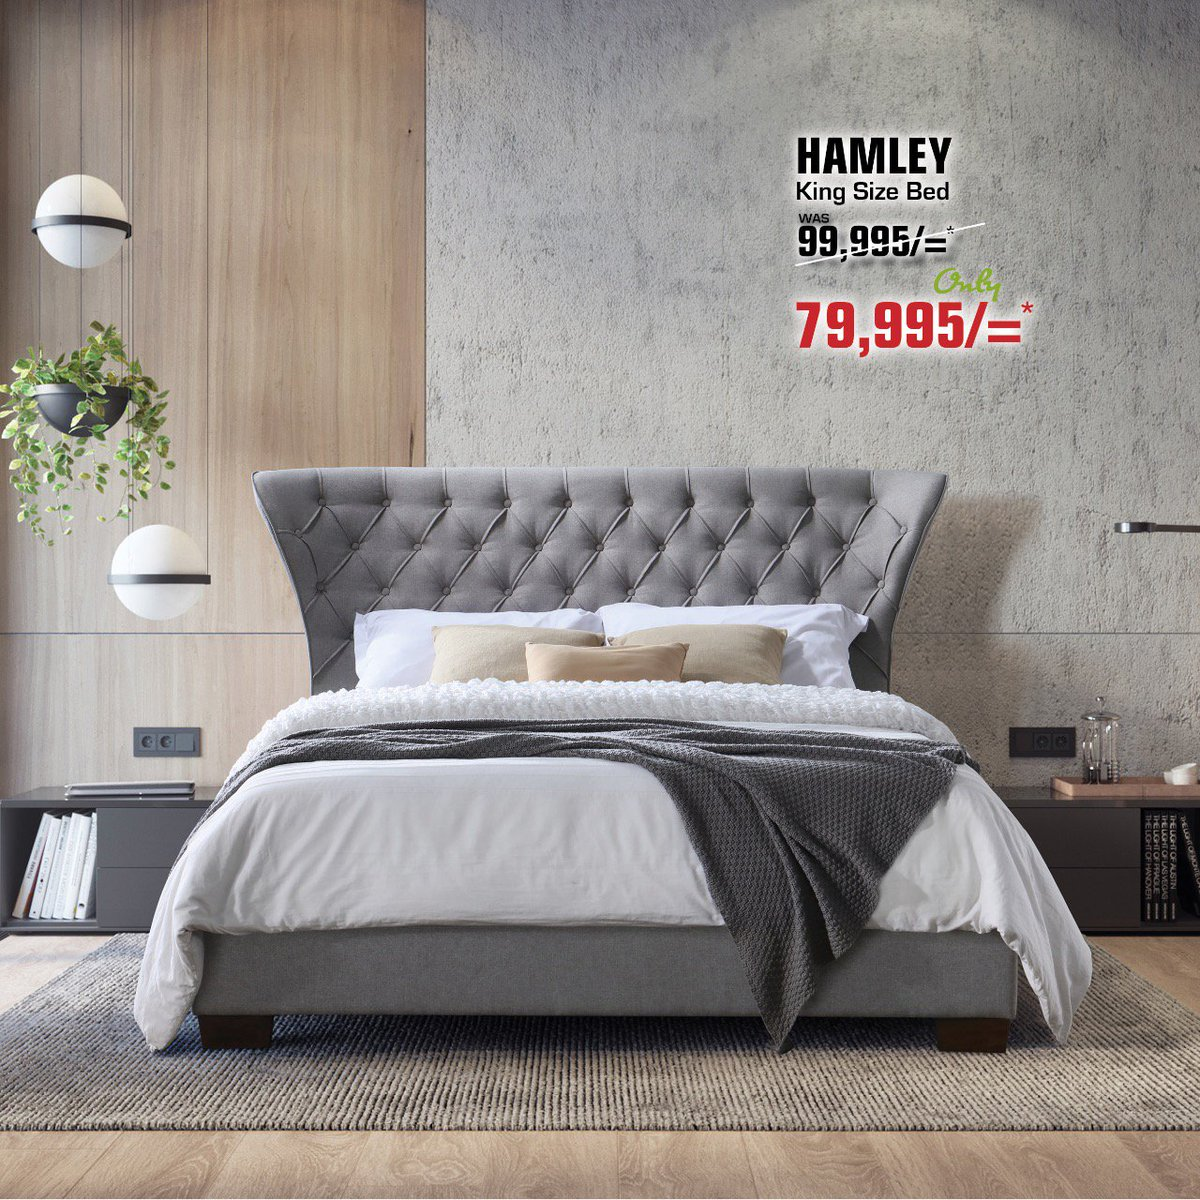 Picture of: Furniture Palace Ltd On Twitter Hamley Now Available Dont Miss Out A Chance On This Gorgeous Fabric Upholstered Bed Nairobi Mombasa Kisumu Eldoret Furniturepalace Bedsinkenya Bedroomsinkenya Https T Co Nqaxxmleyh